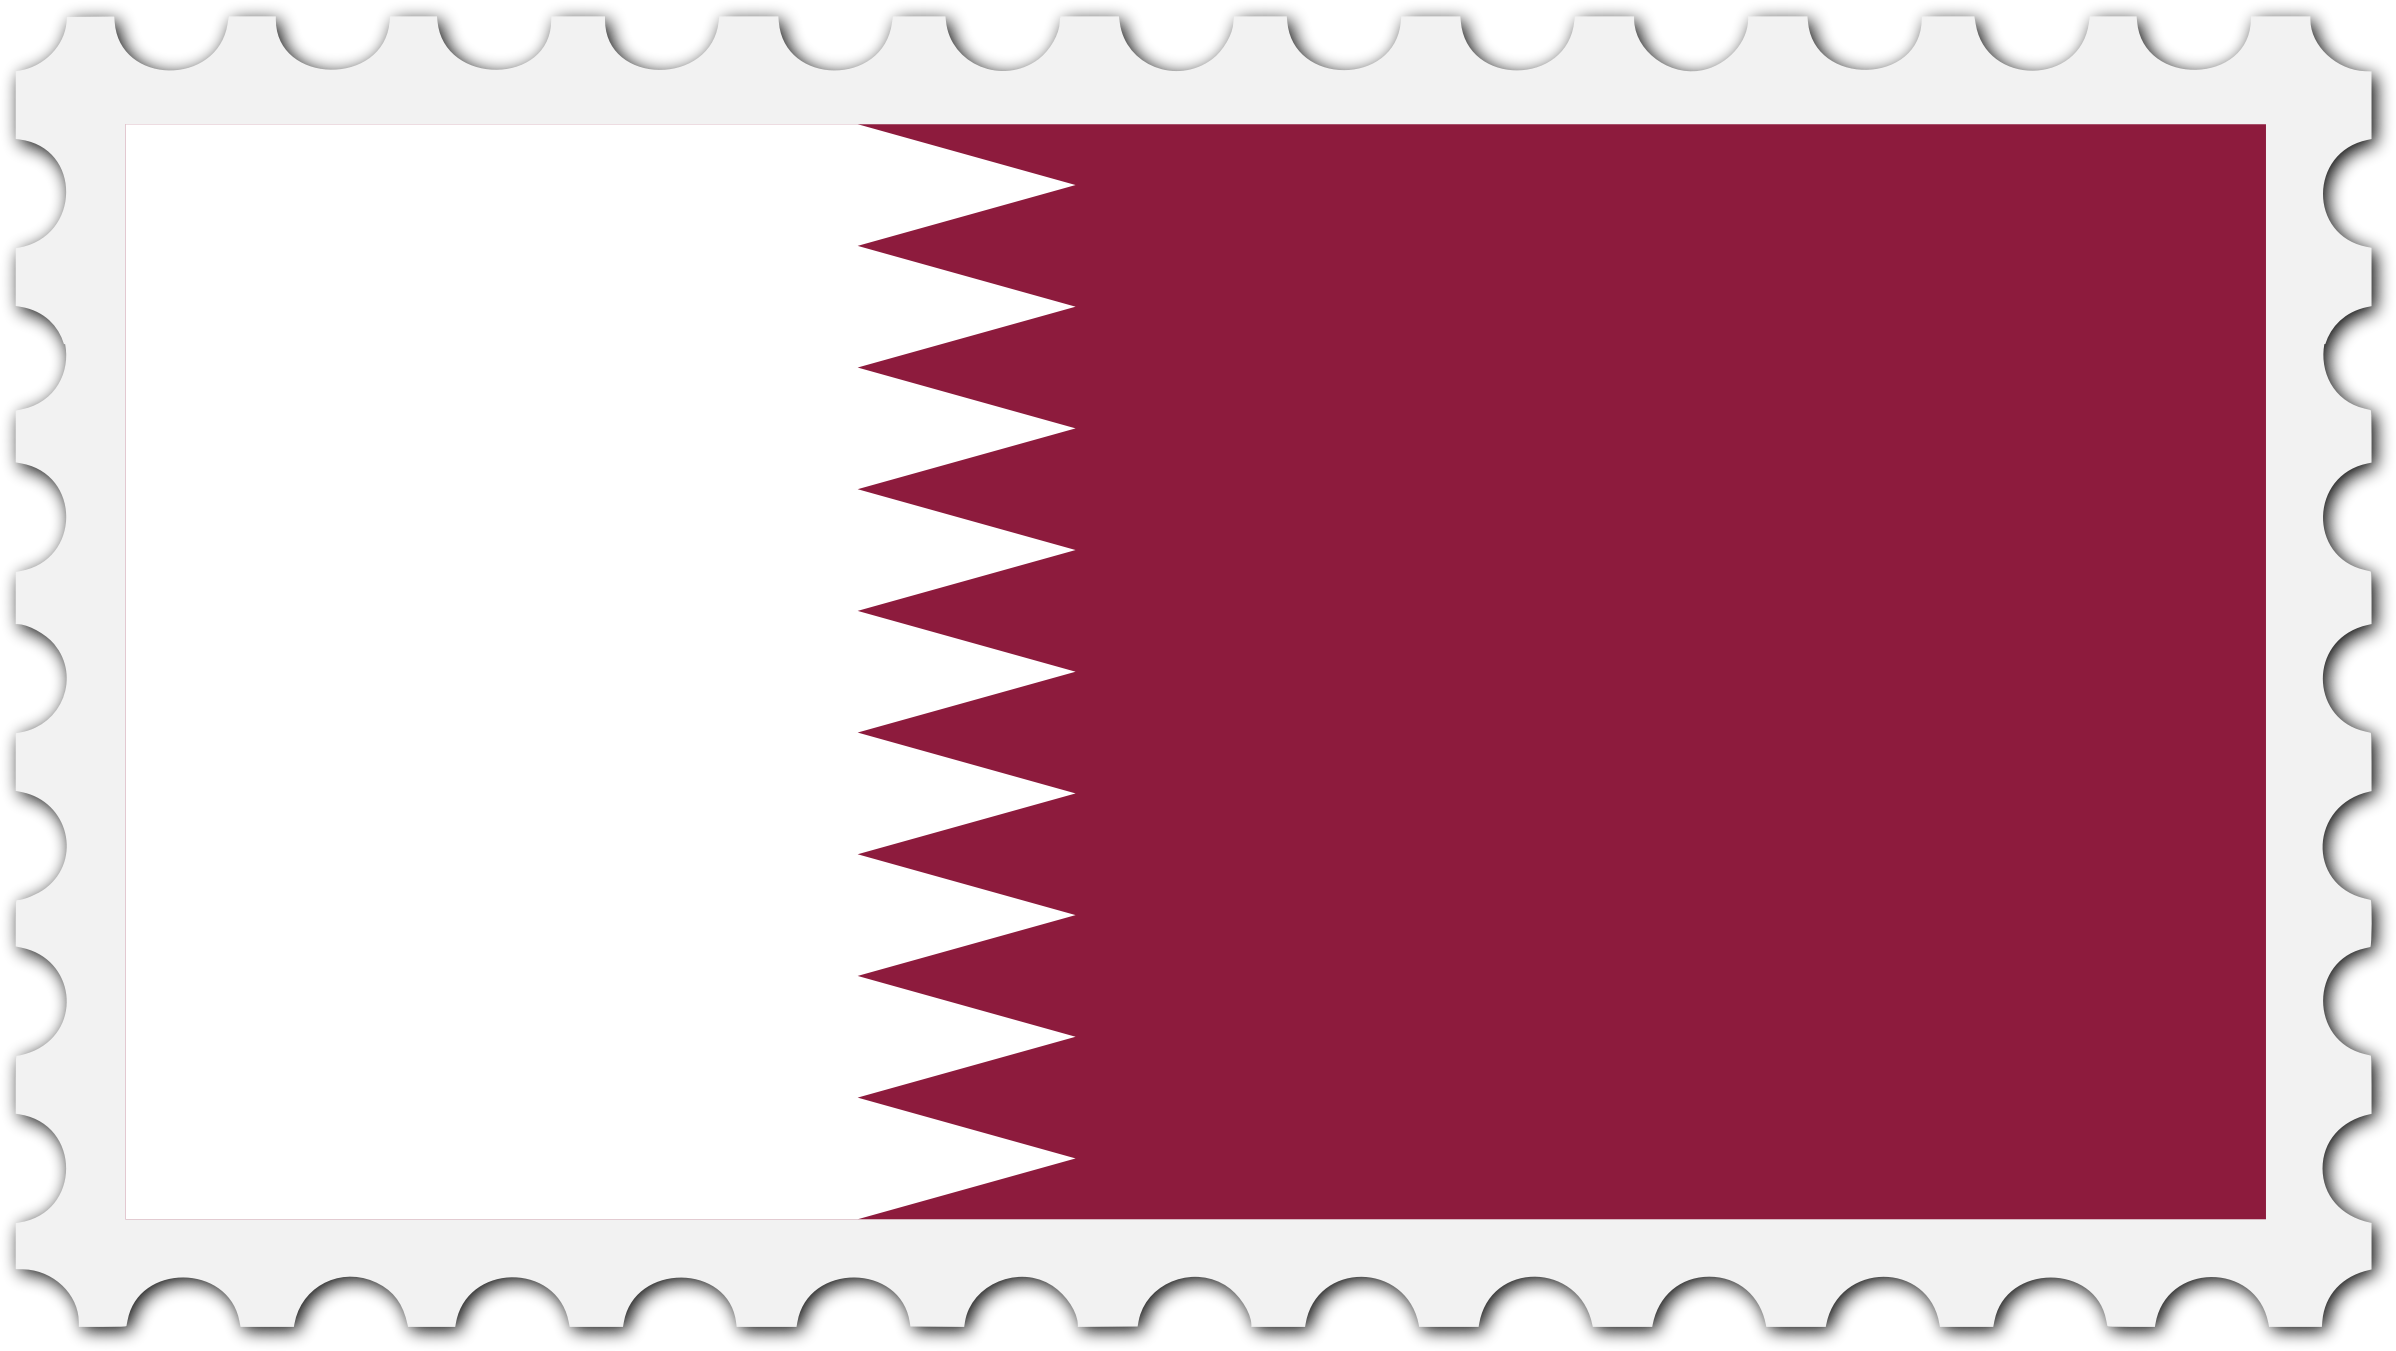 Qatar flag stamp by Firkin